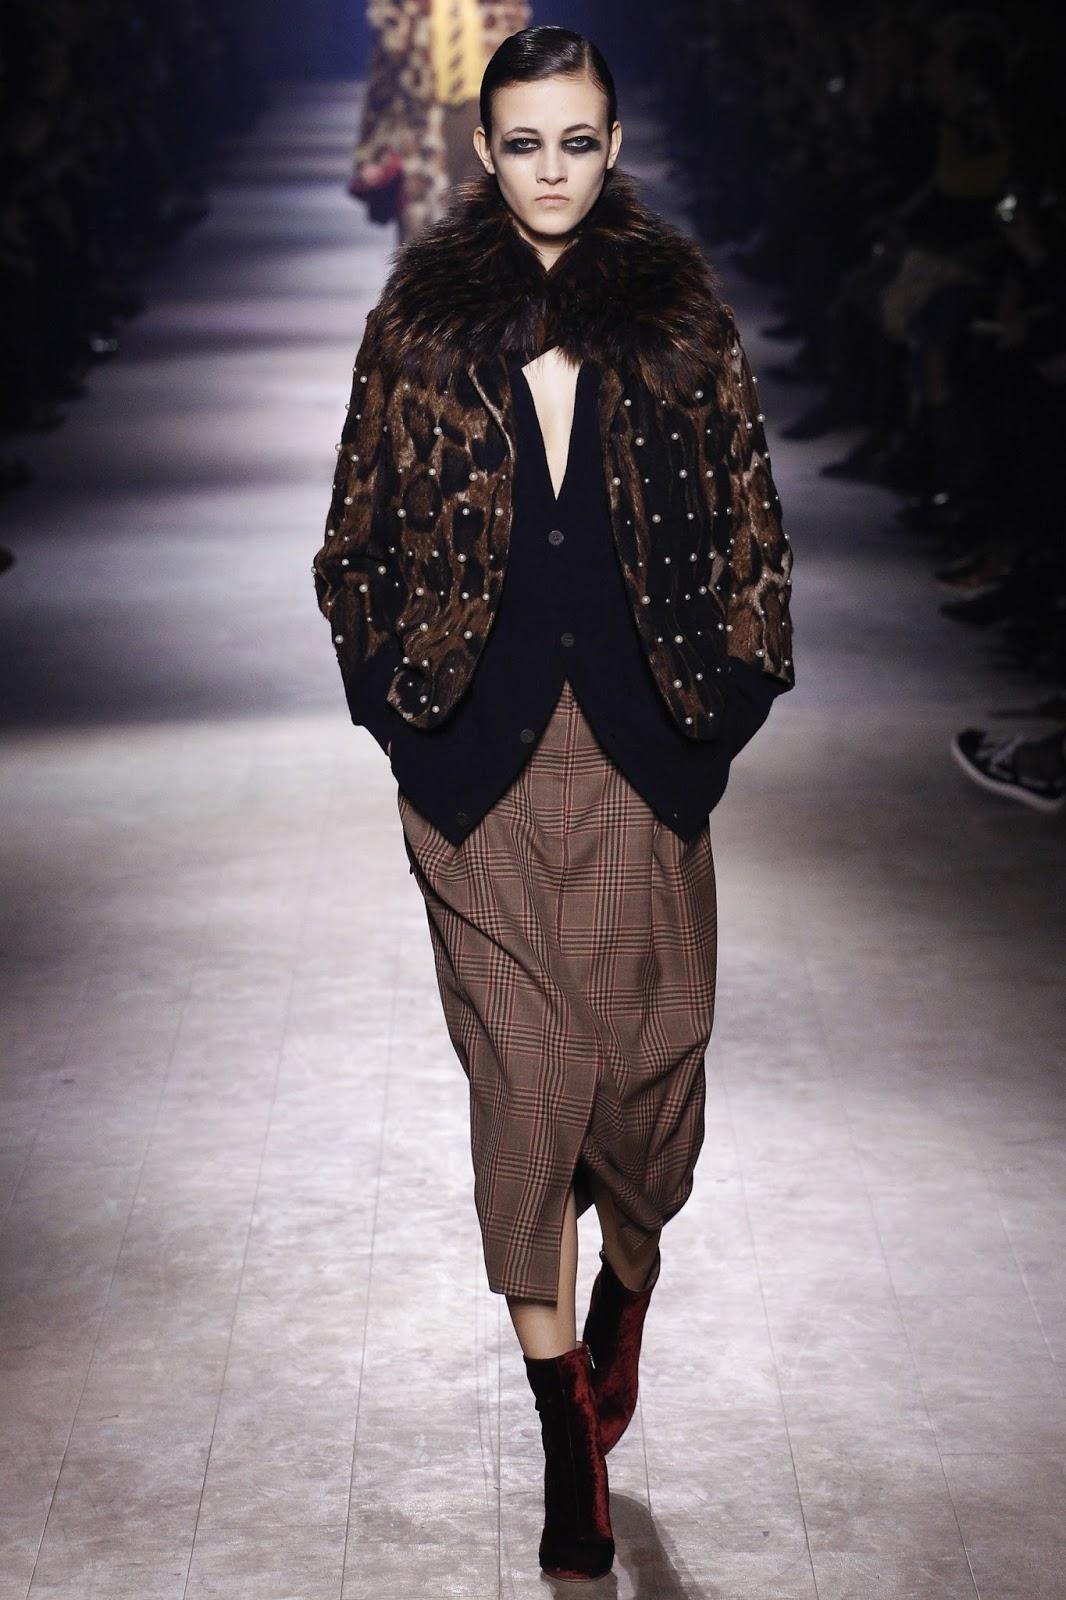 Paris fashion week best collections / Dries van Noten Fall/Winter 2016 via www.fashionedbylove.co.uk british fashion blog